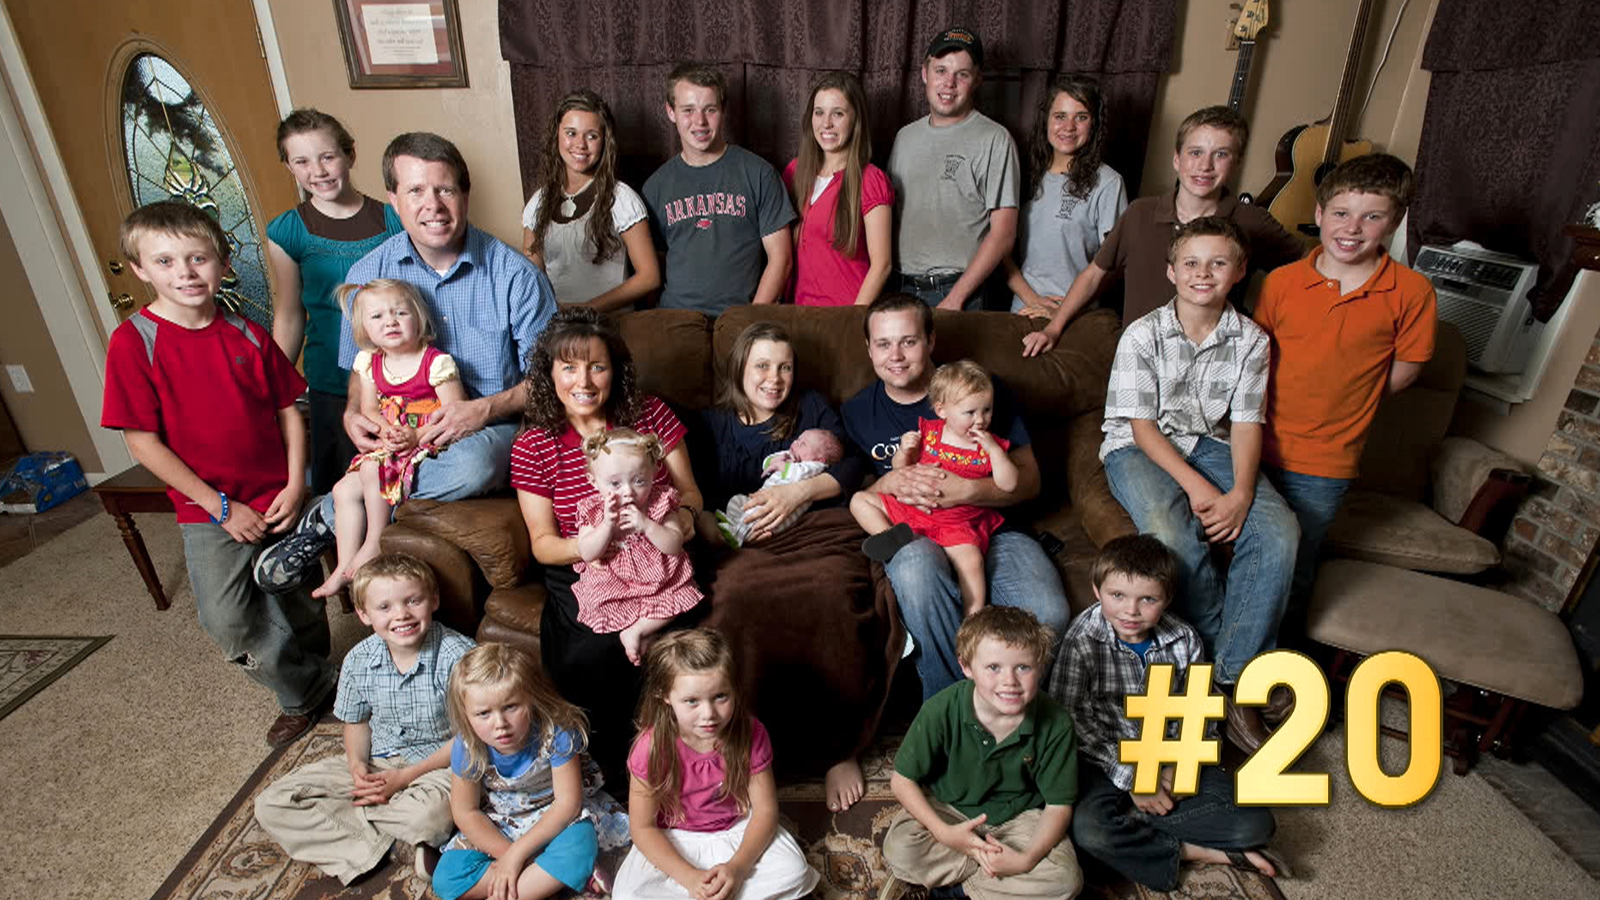 On to the next one…Duggar's 20th baby